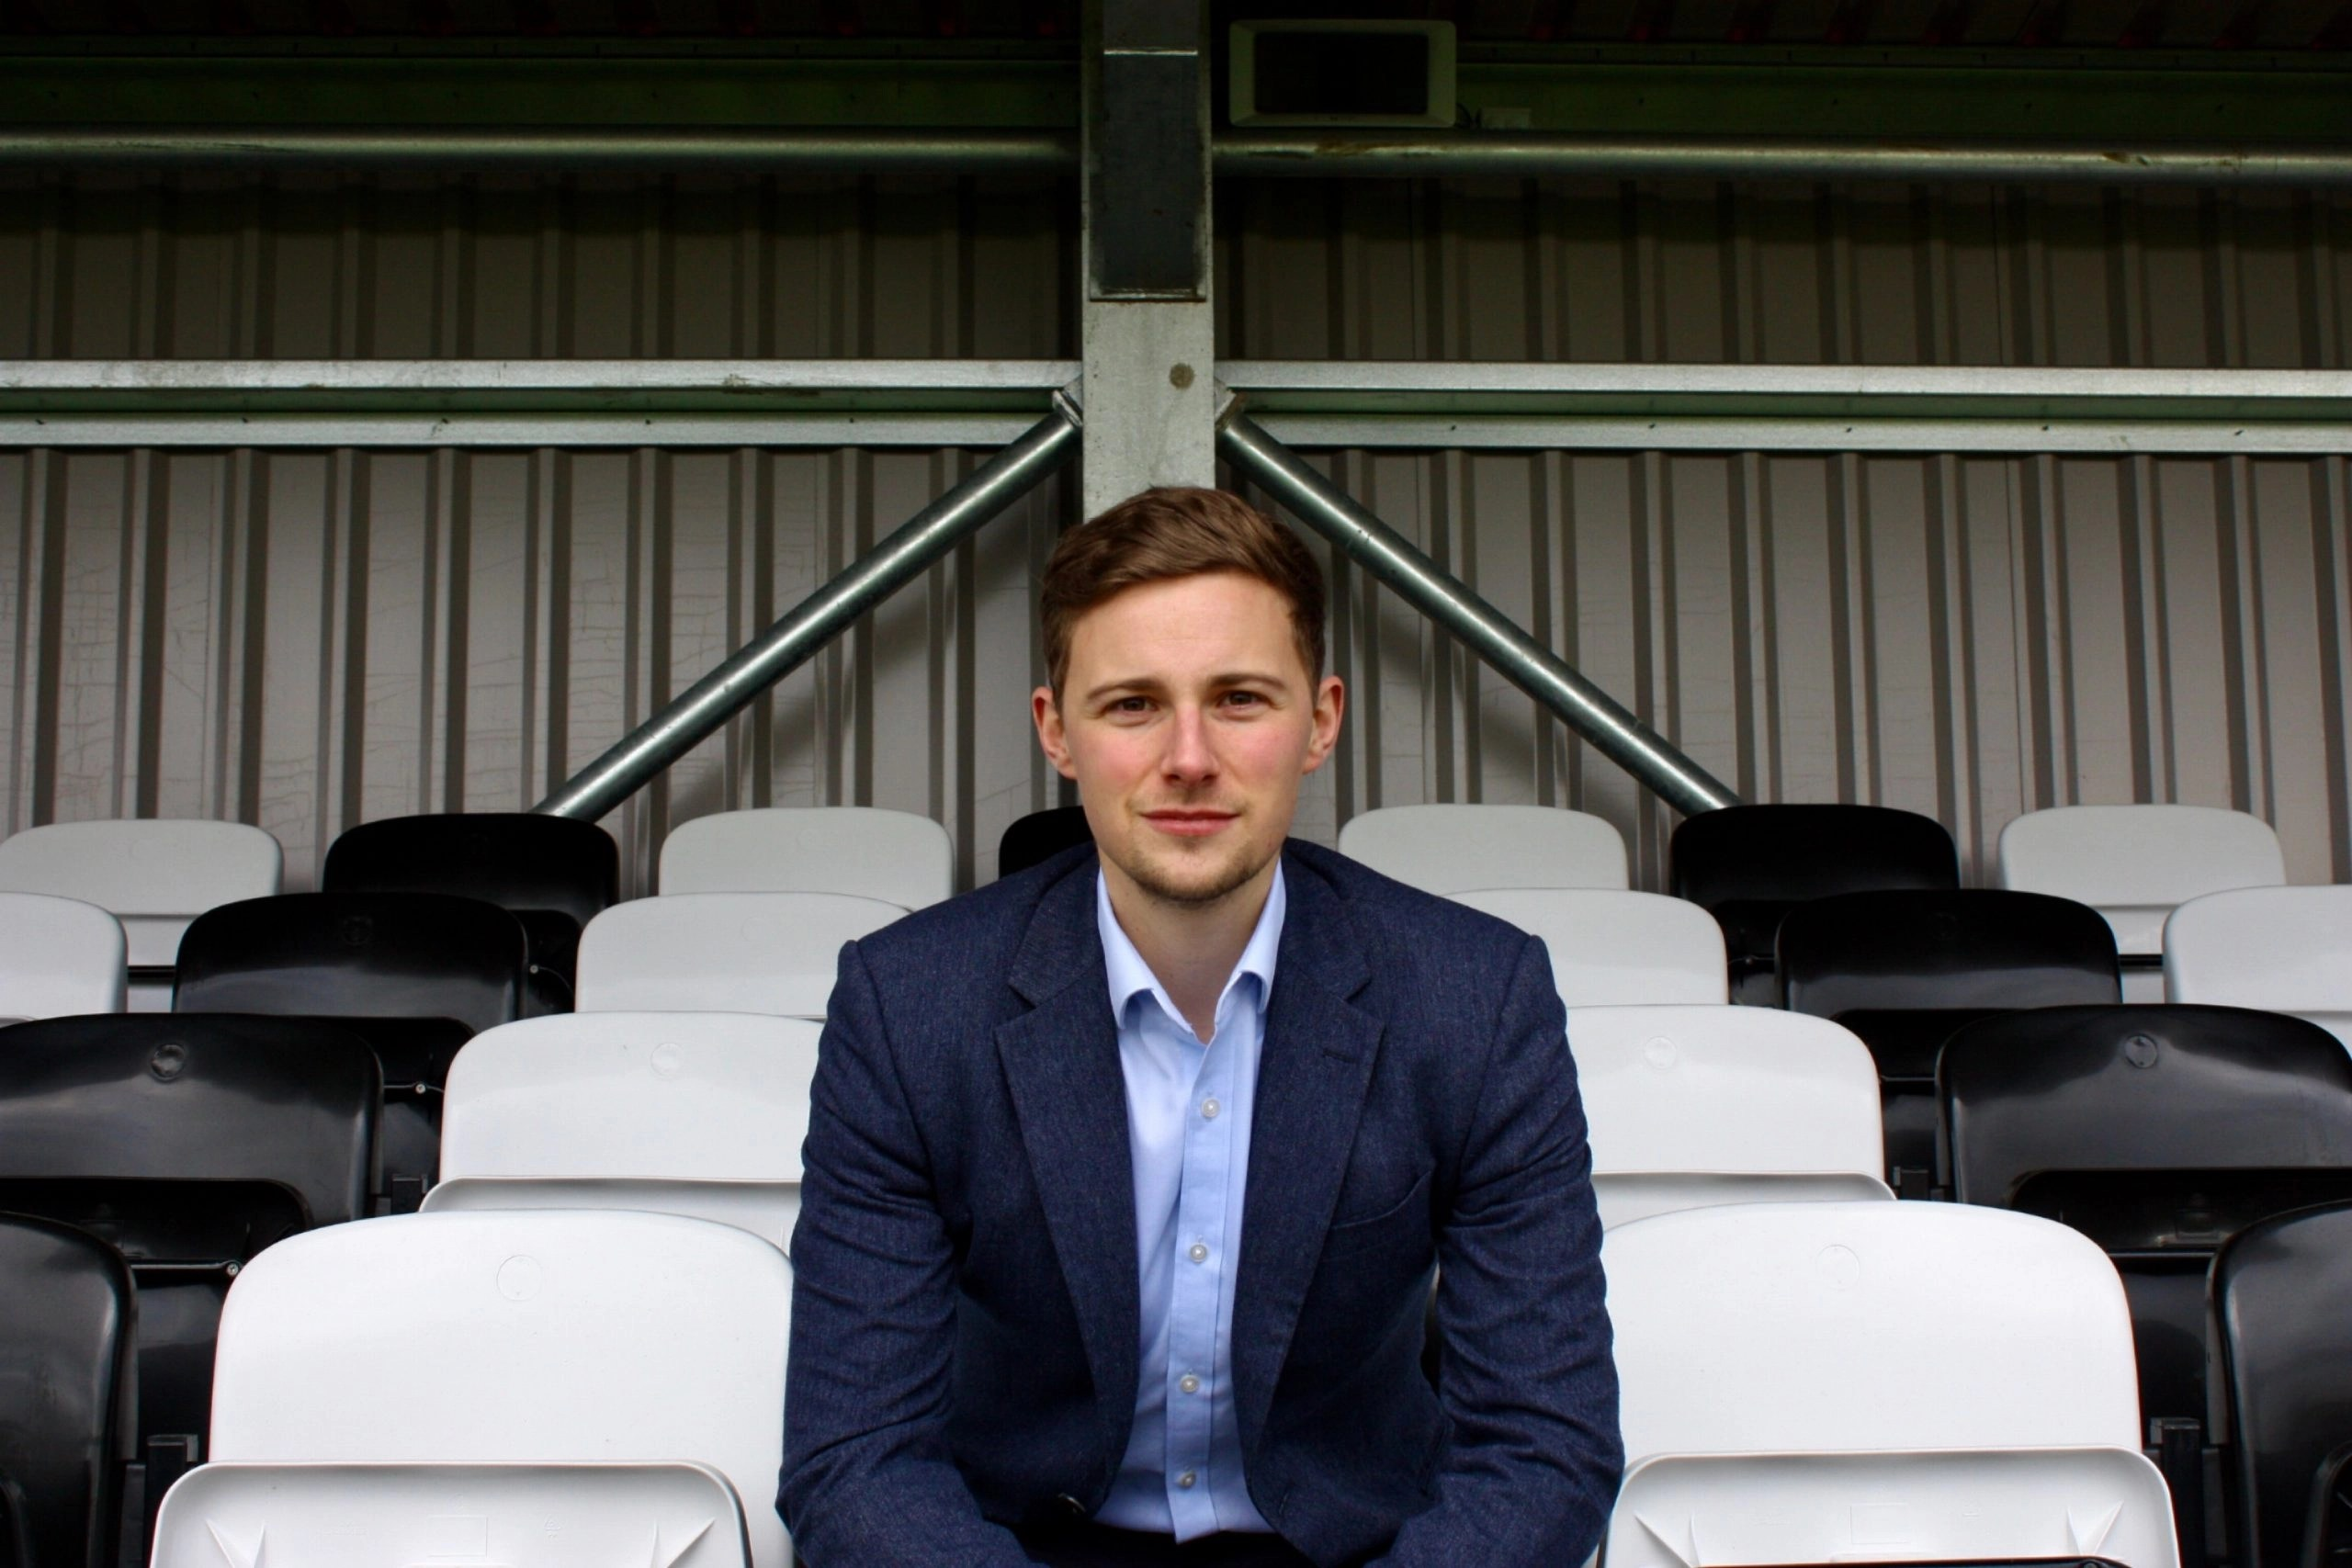 Andy Howe | Head of First Team Domestic Scouting at AFC Bournemouth